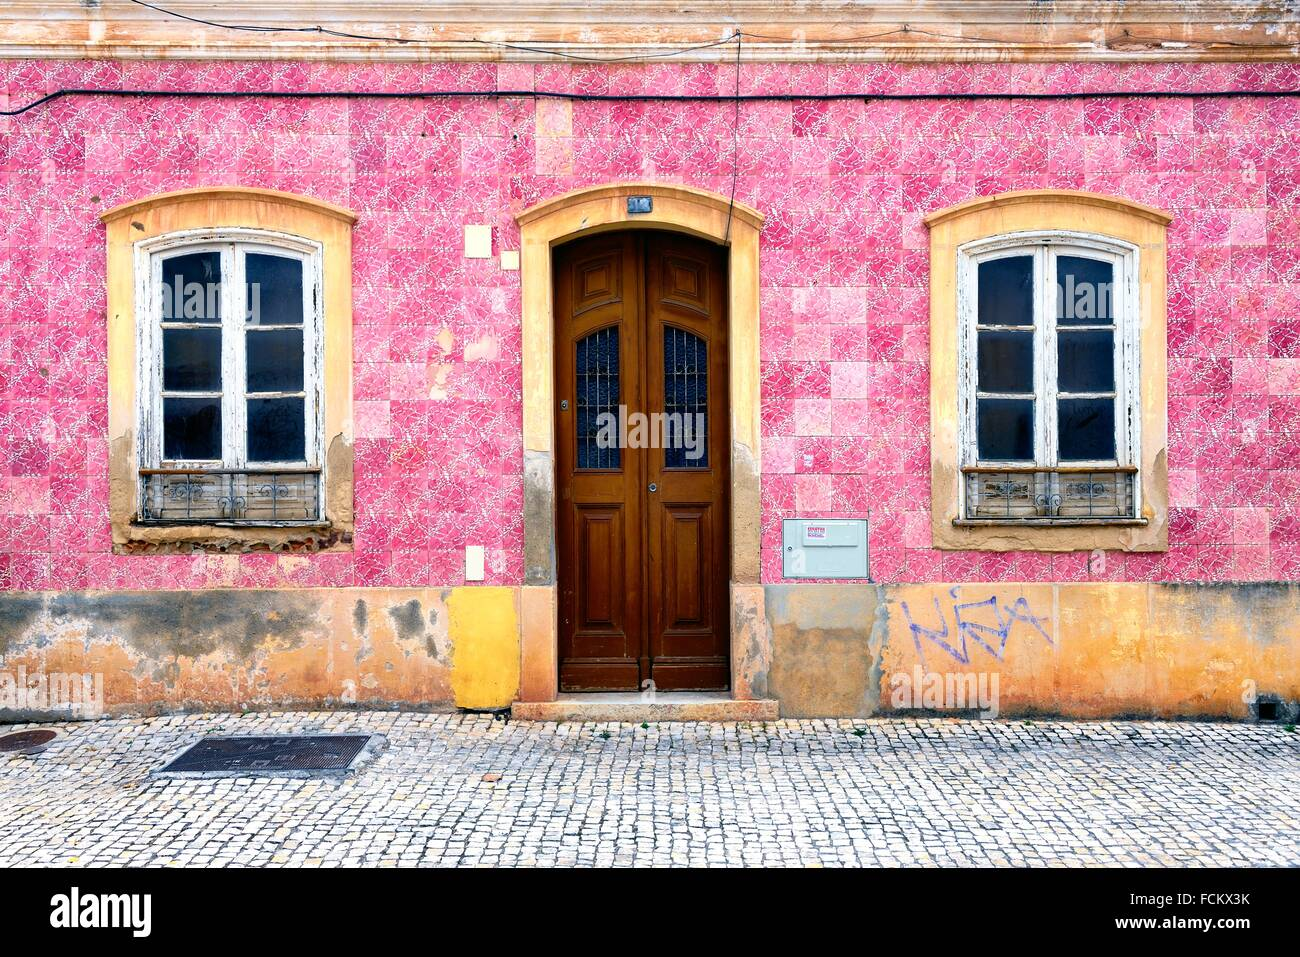 Europe, Portugal, Algarve, Faro district, Silves, former capital of Algarve, facade of traditional Portuguese townhouse - Stock Image